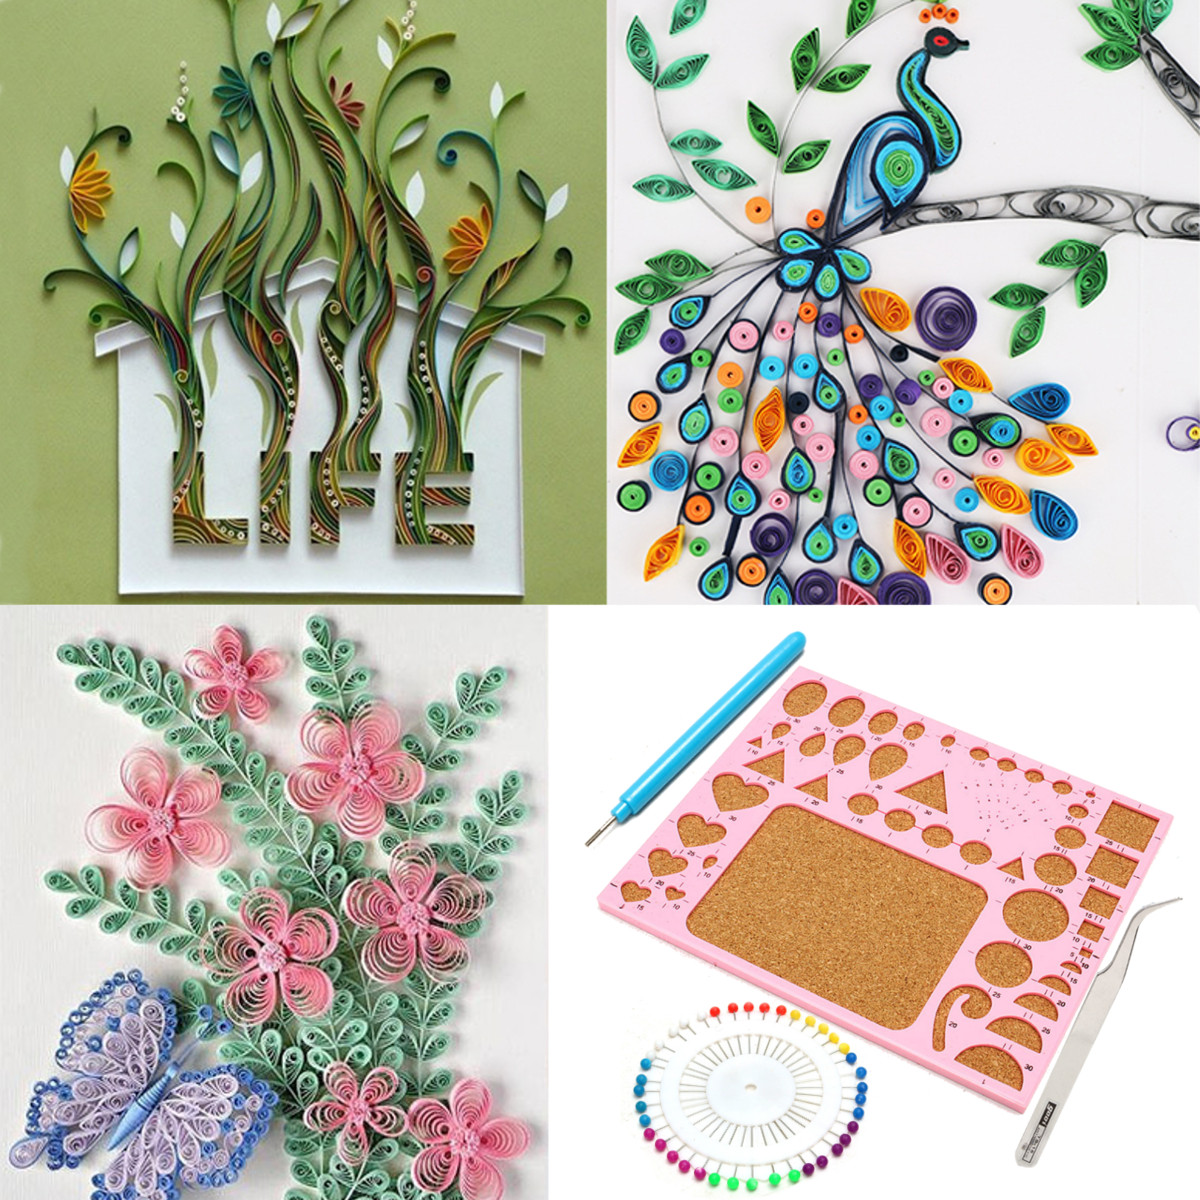 11Pcs Paper Quilling DIY Craft Tool Slotted Template Board Grid Needle Kit Set